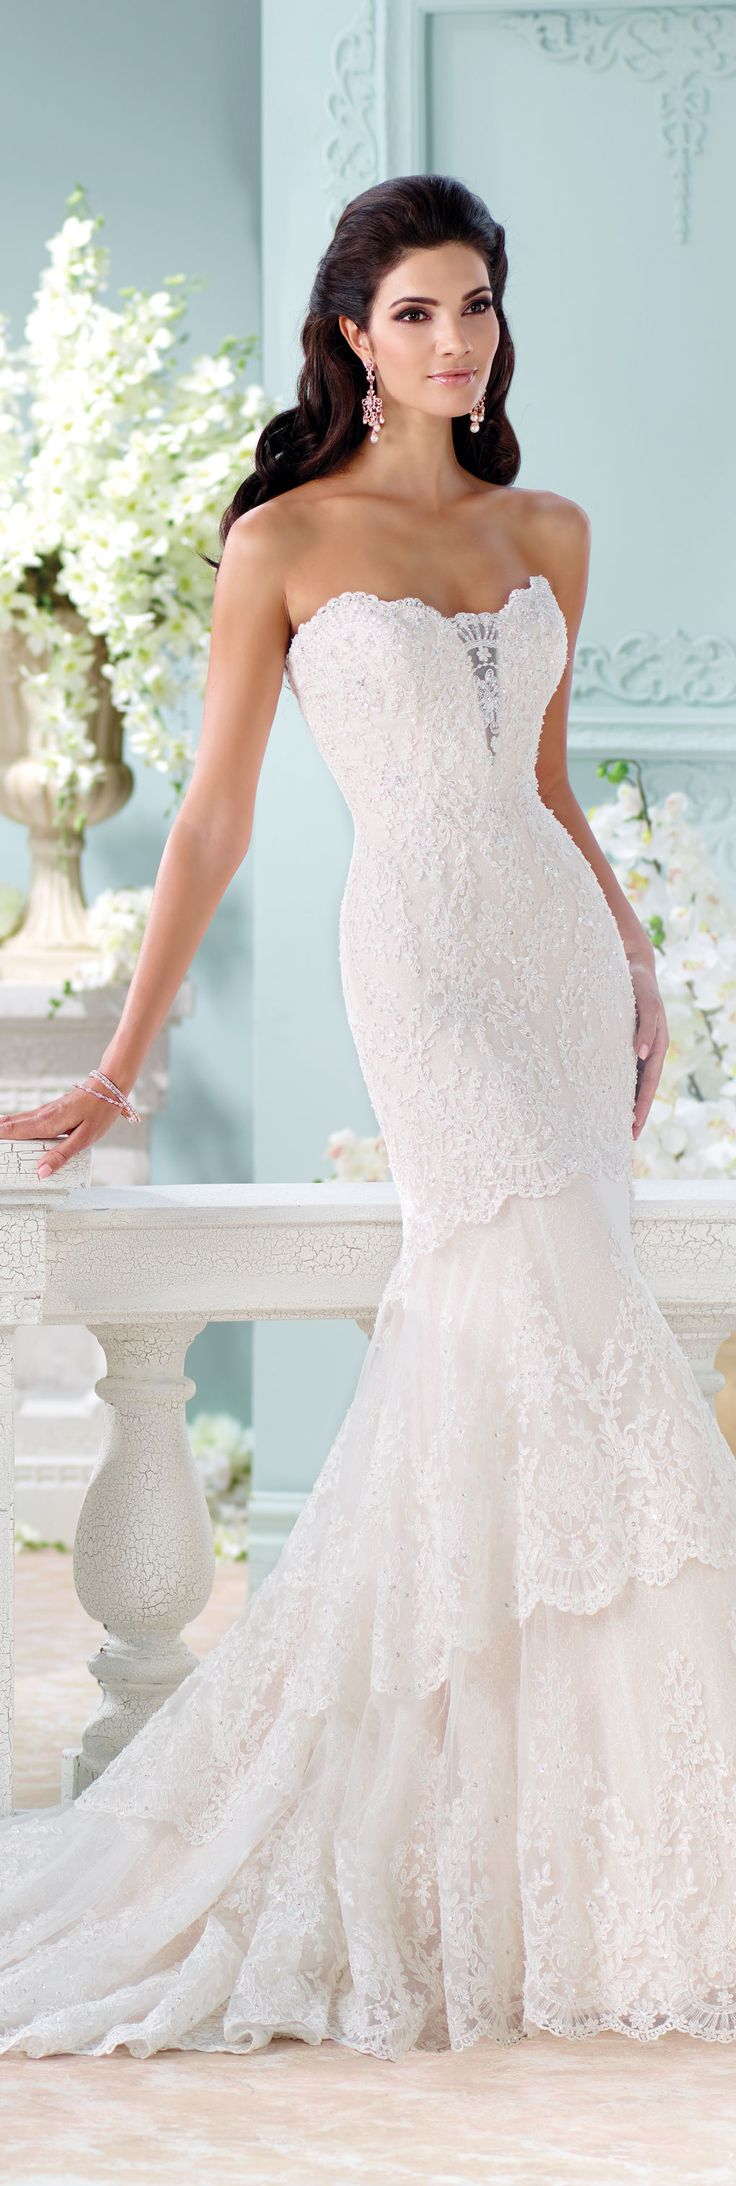 //The David Tutera for Mon Cheri Spring 2016 Wedding Gown Collection - Style No. 116212 Eliana #lace #wedding #dresses